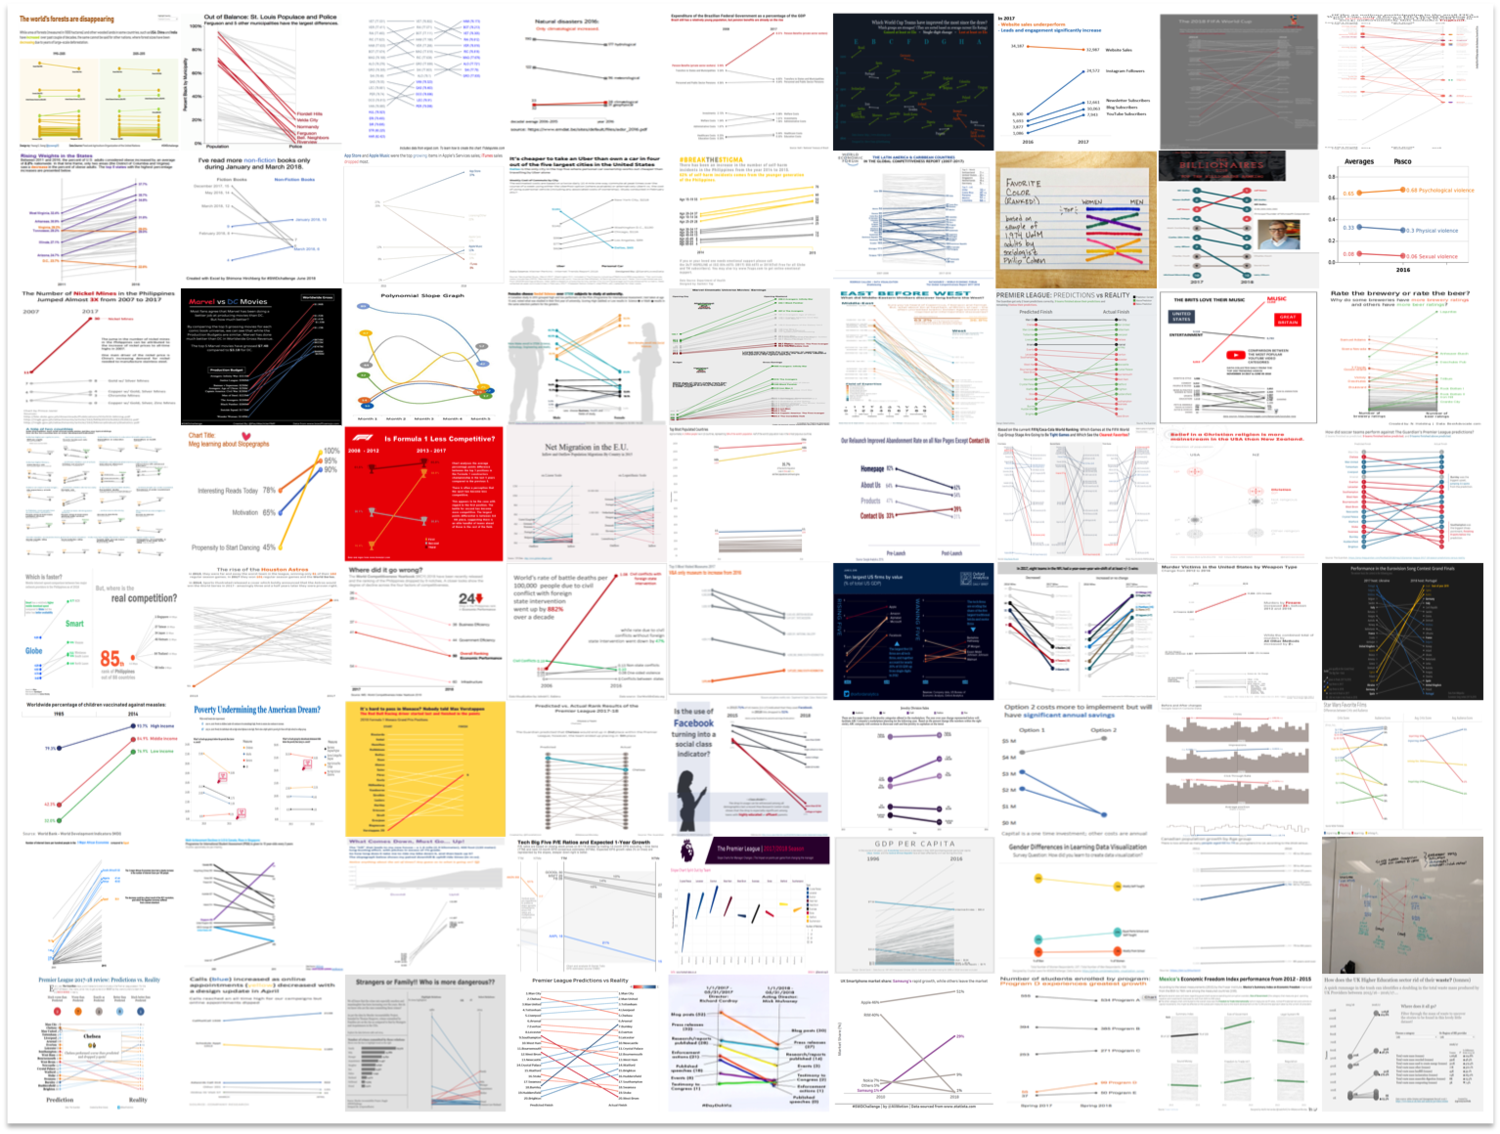 72 Splendid Slopegraphs Storytelling With Data